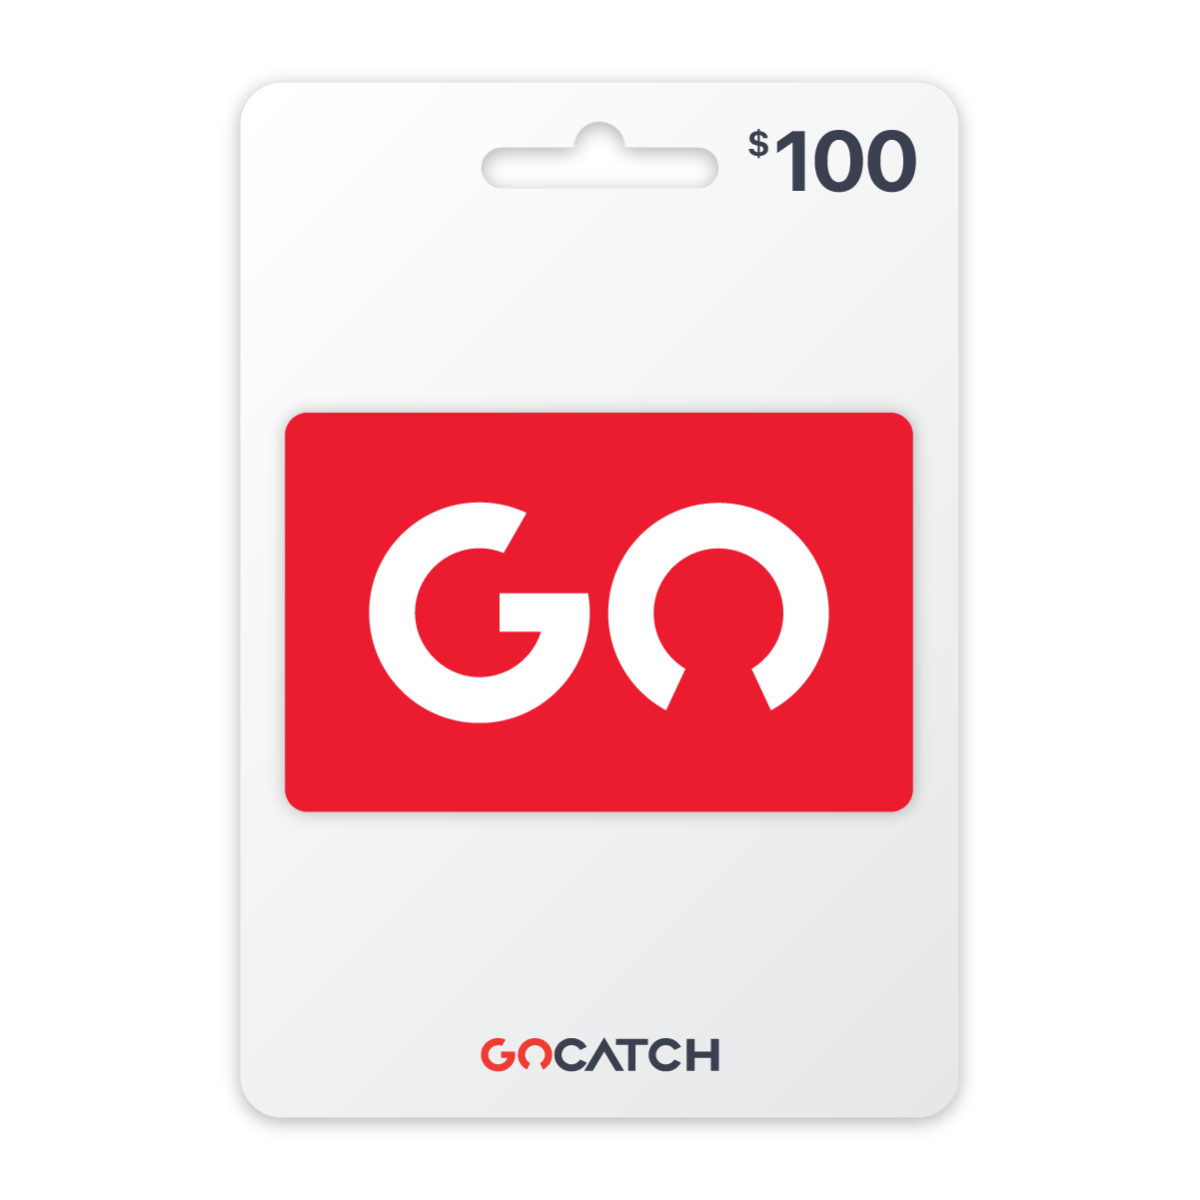 $100 Gift Card 7